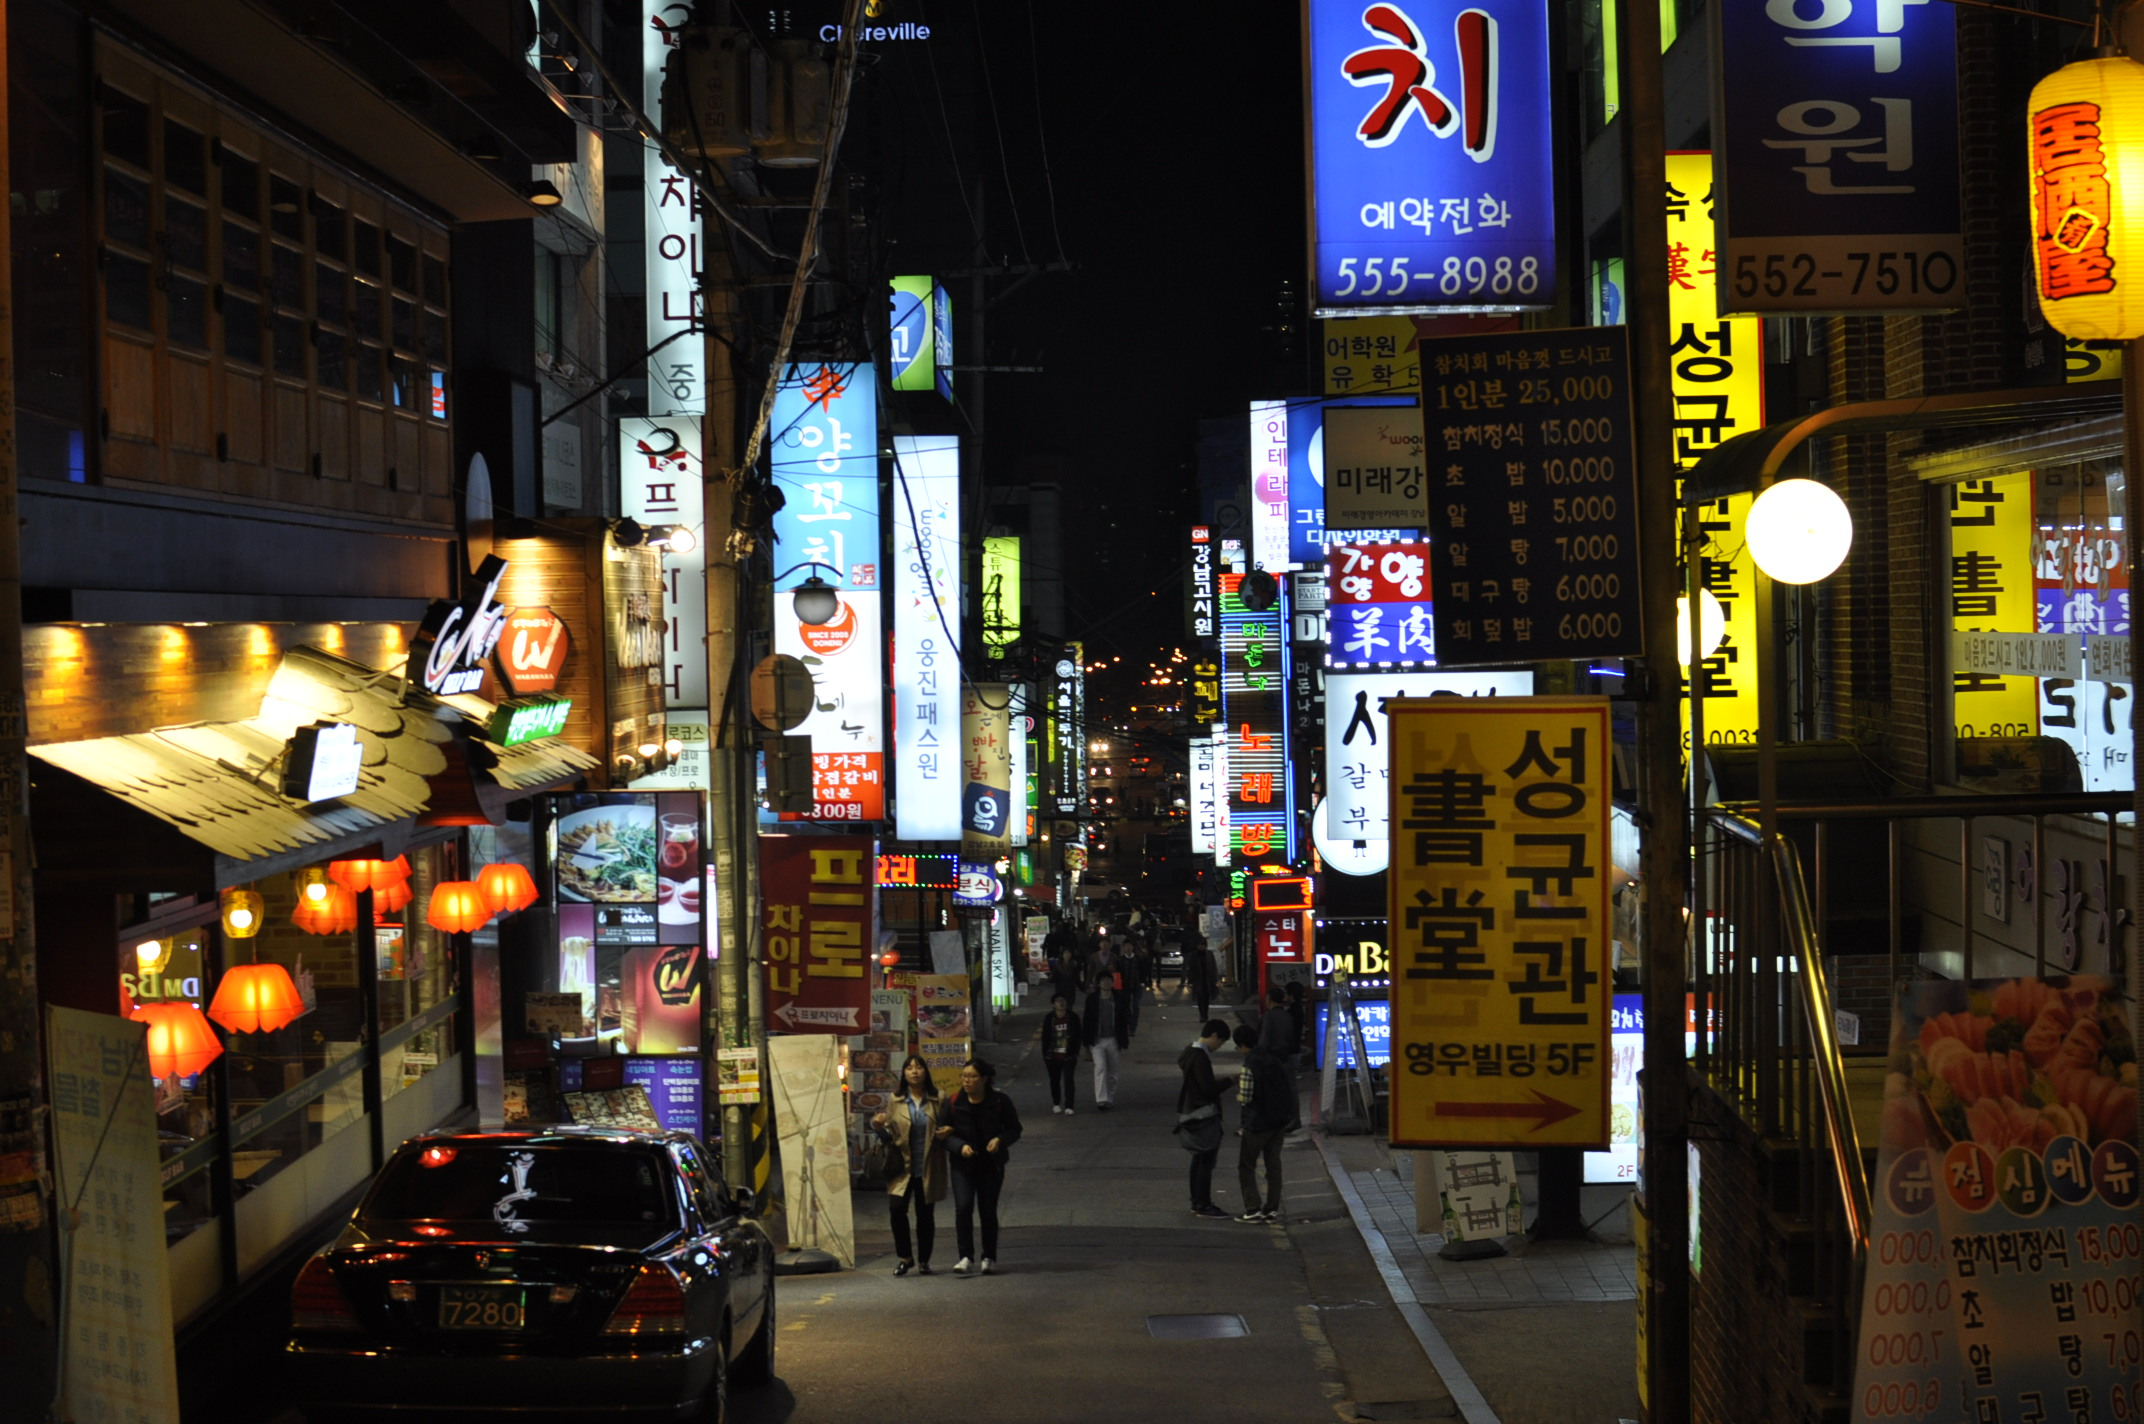 living in korea: experiencing otherness